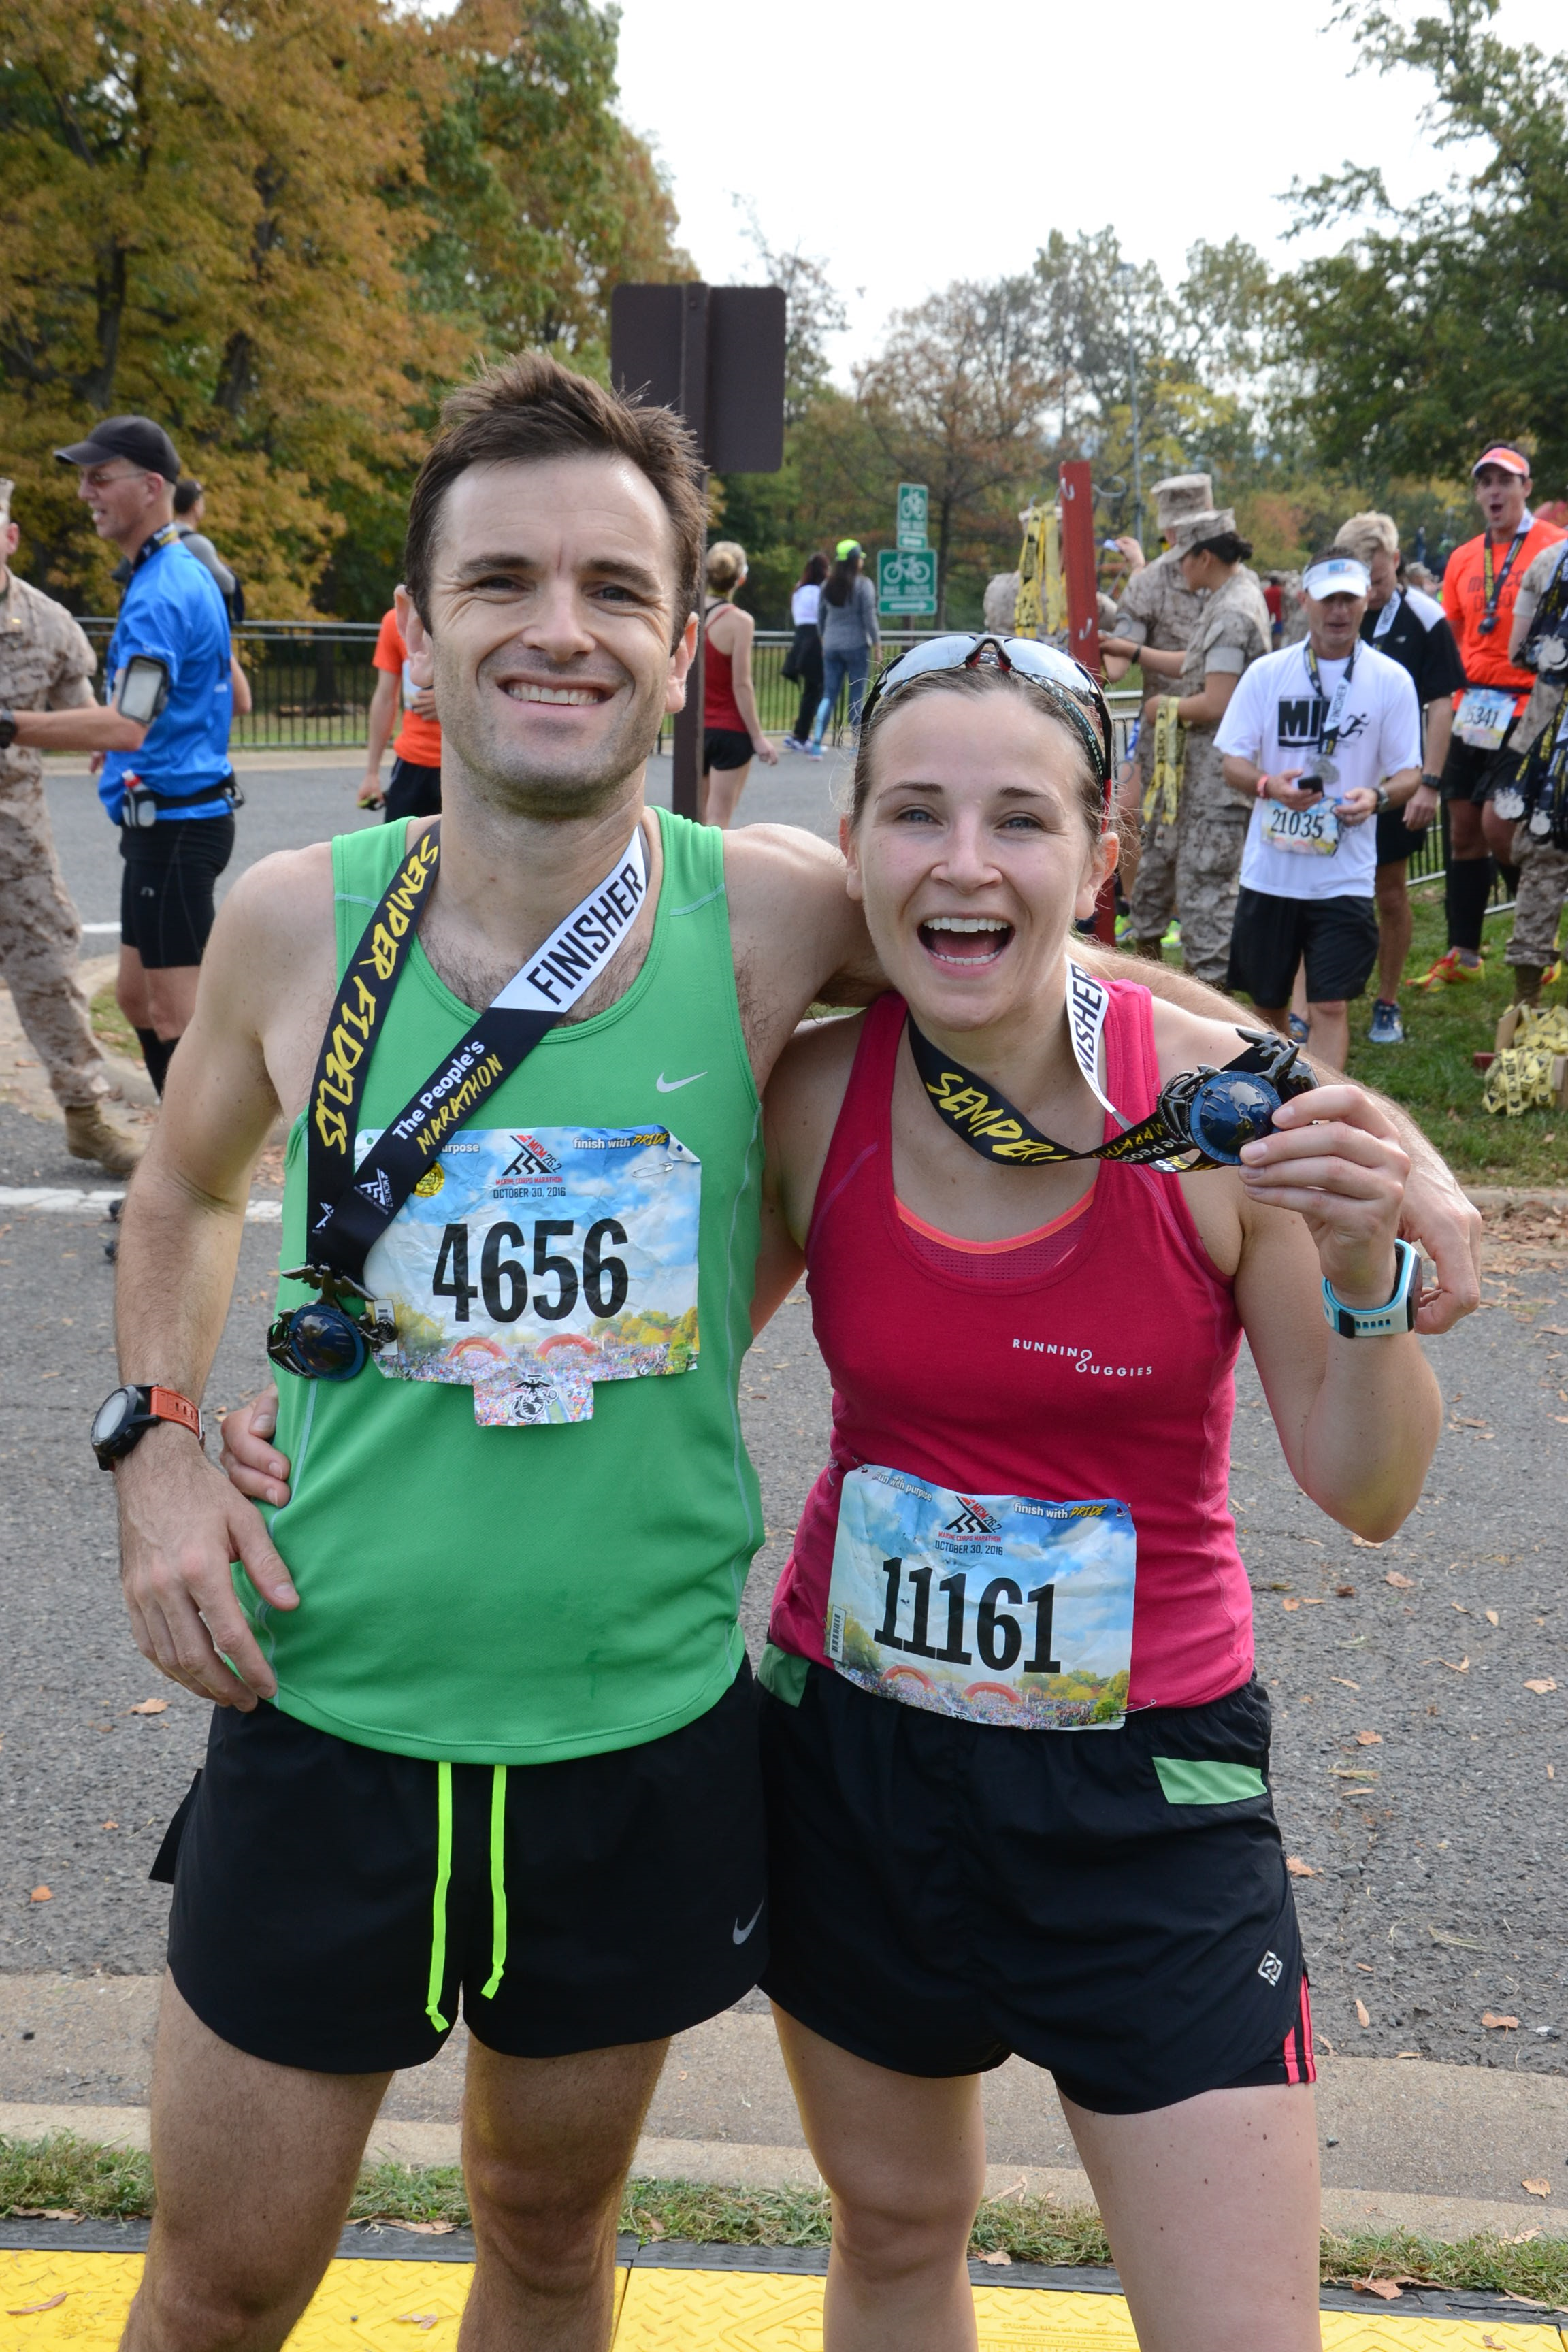 My brother and I at the Washington Marine Corps Marathon, USA in October 2016 - a new PB!!